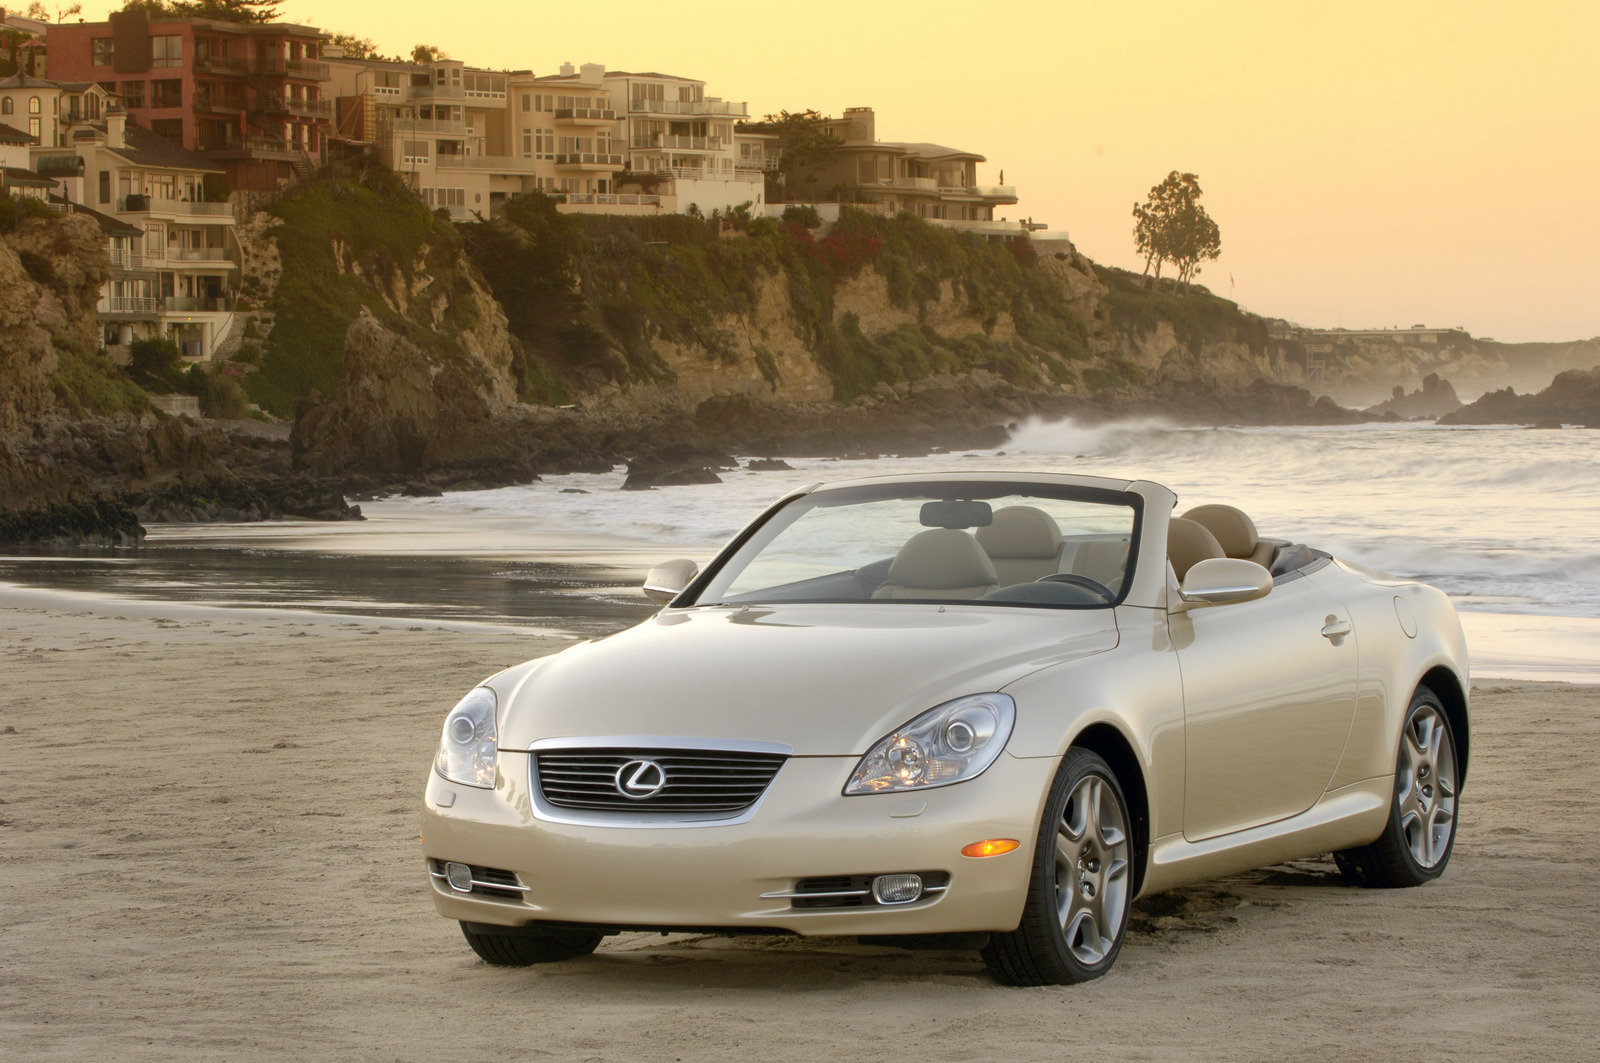 2006 lexus sc 430 picture 93308 car review top speed. Black Bedroom Furniture Sets. Home Design Ideas